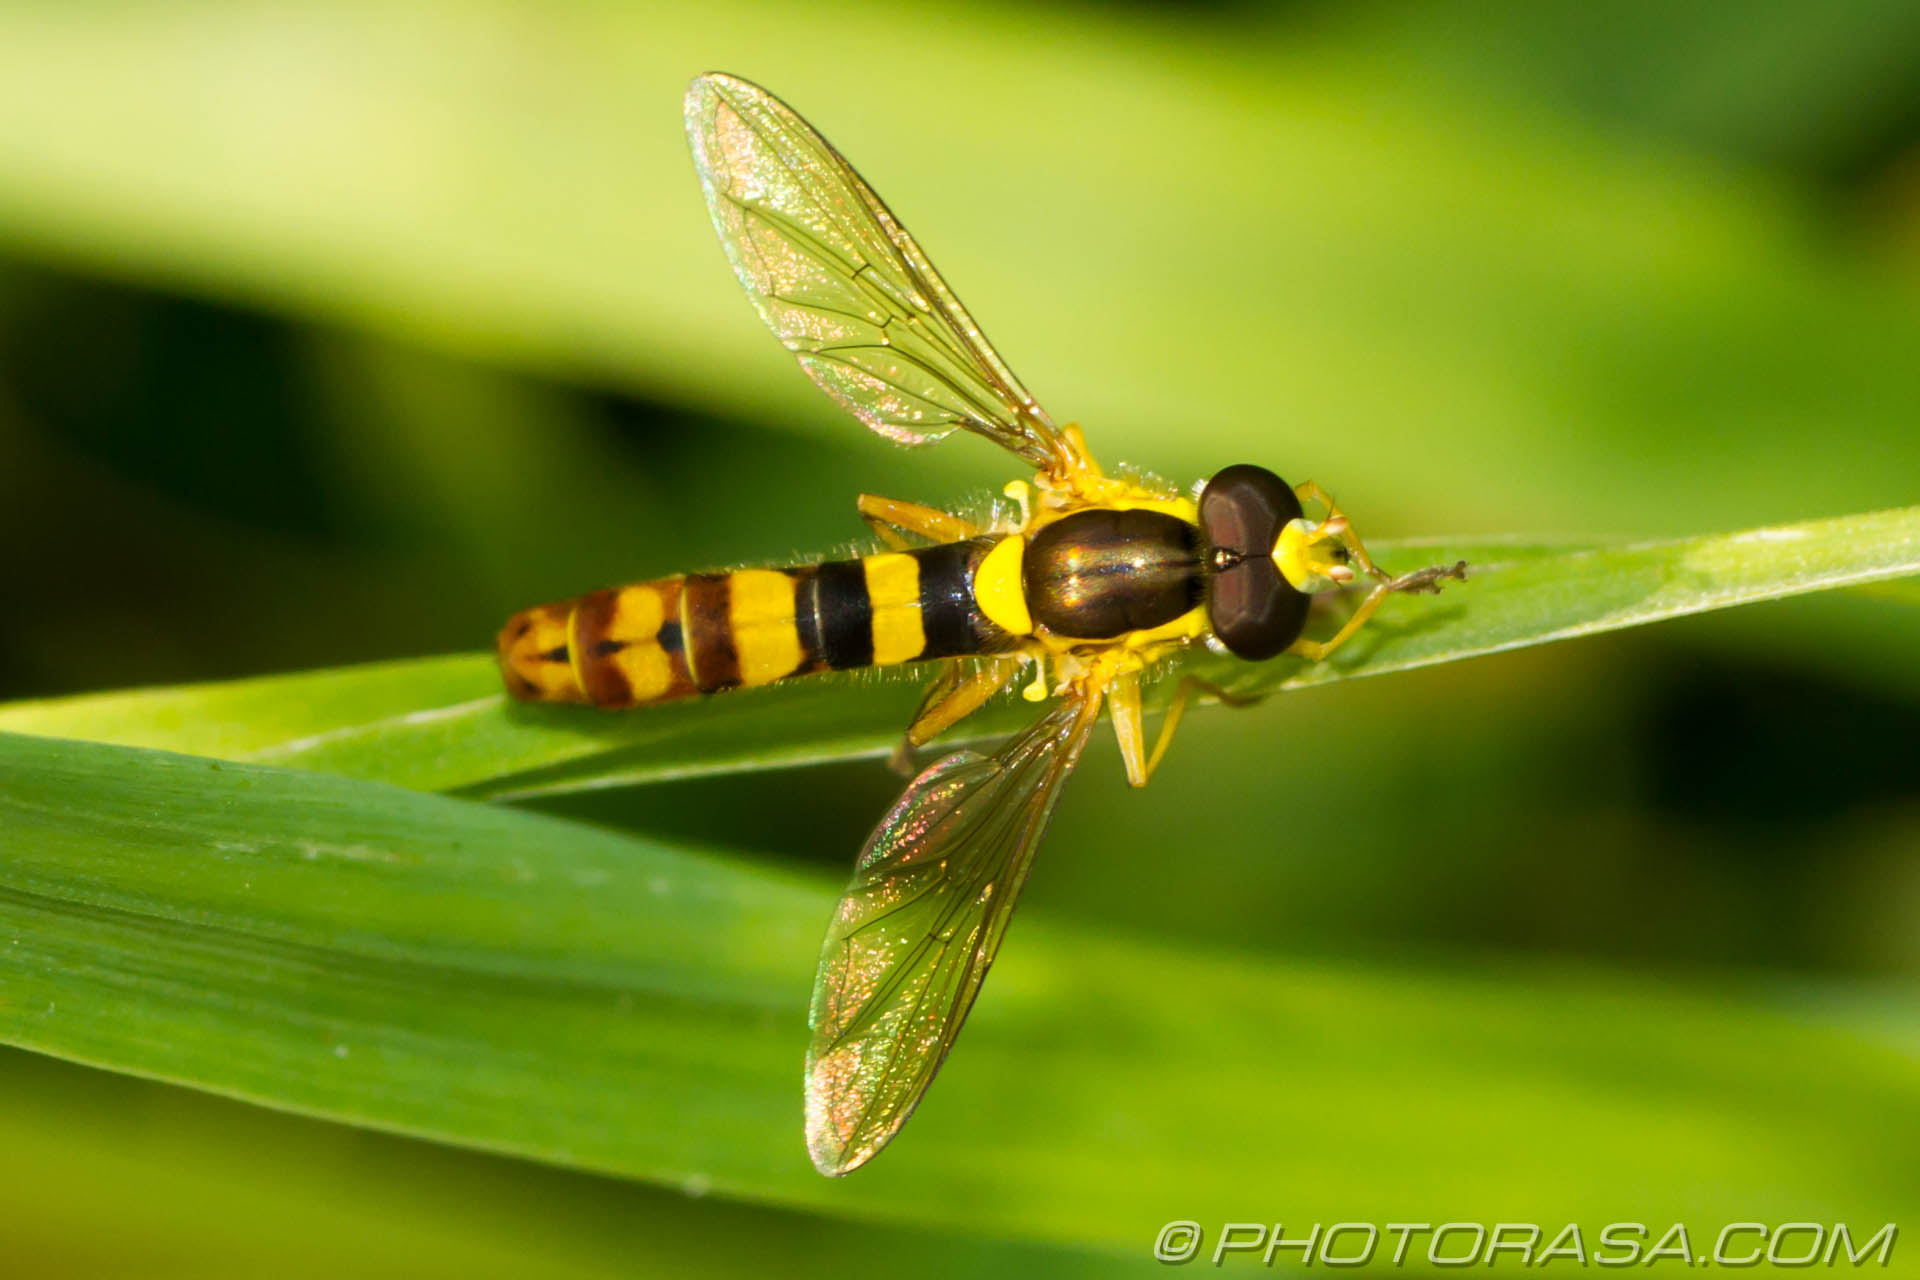 http://photorasa.com/animals/insects/hoverflies/attachment/sphaerophoria-scripta-hoverfly/